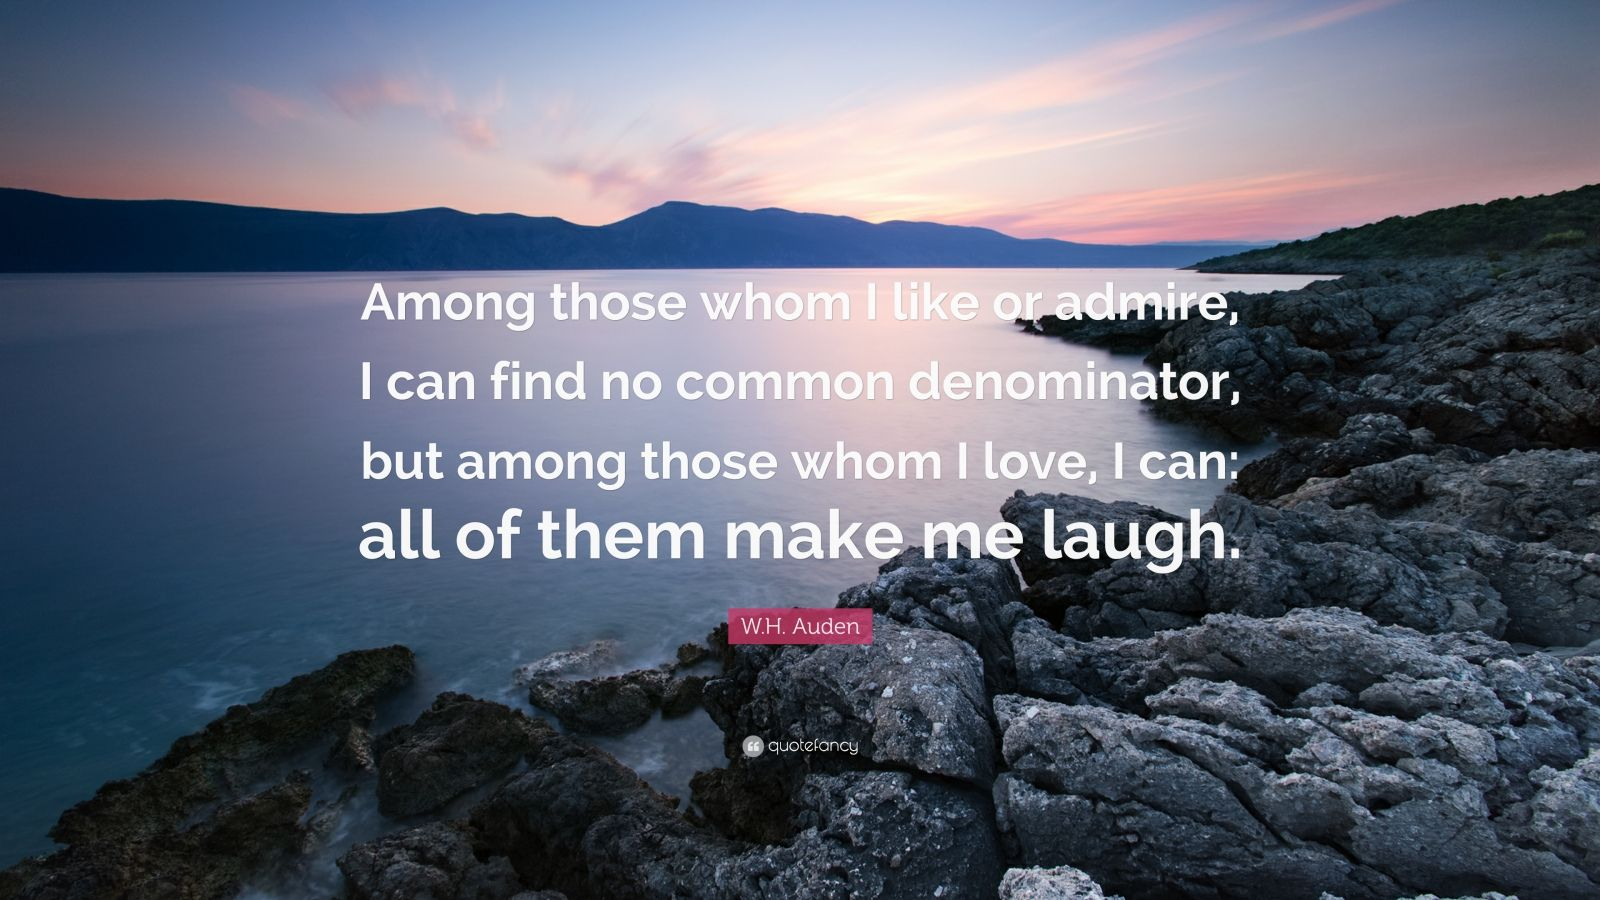 """W.H. Auden Quote: """"Among those whom I like or admire, I can find no common denominator, but among those whom I love, I can: all of them make me laugh."""""""